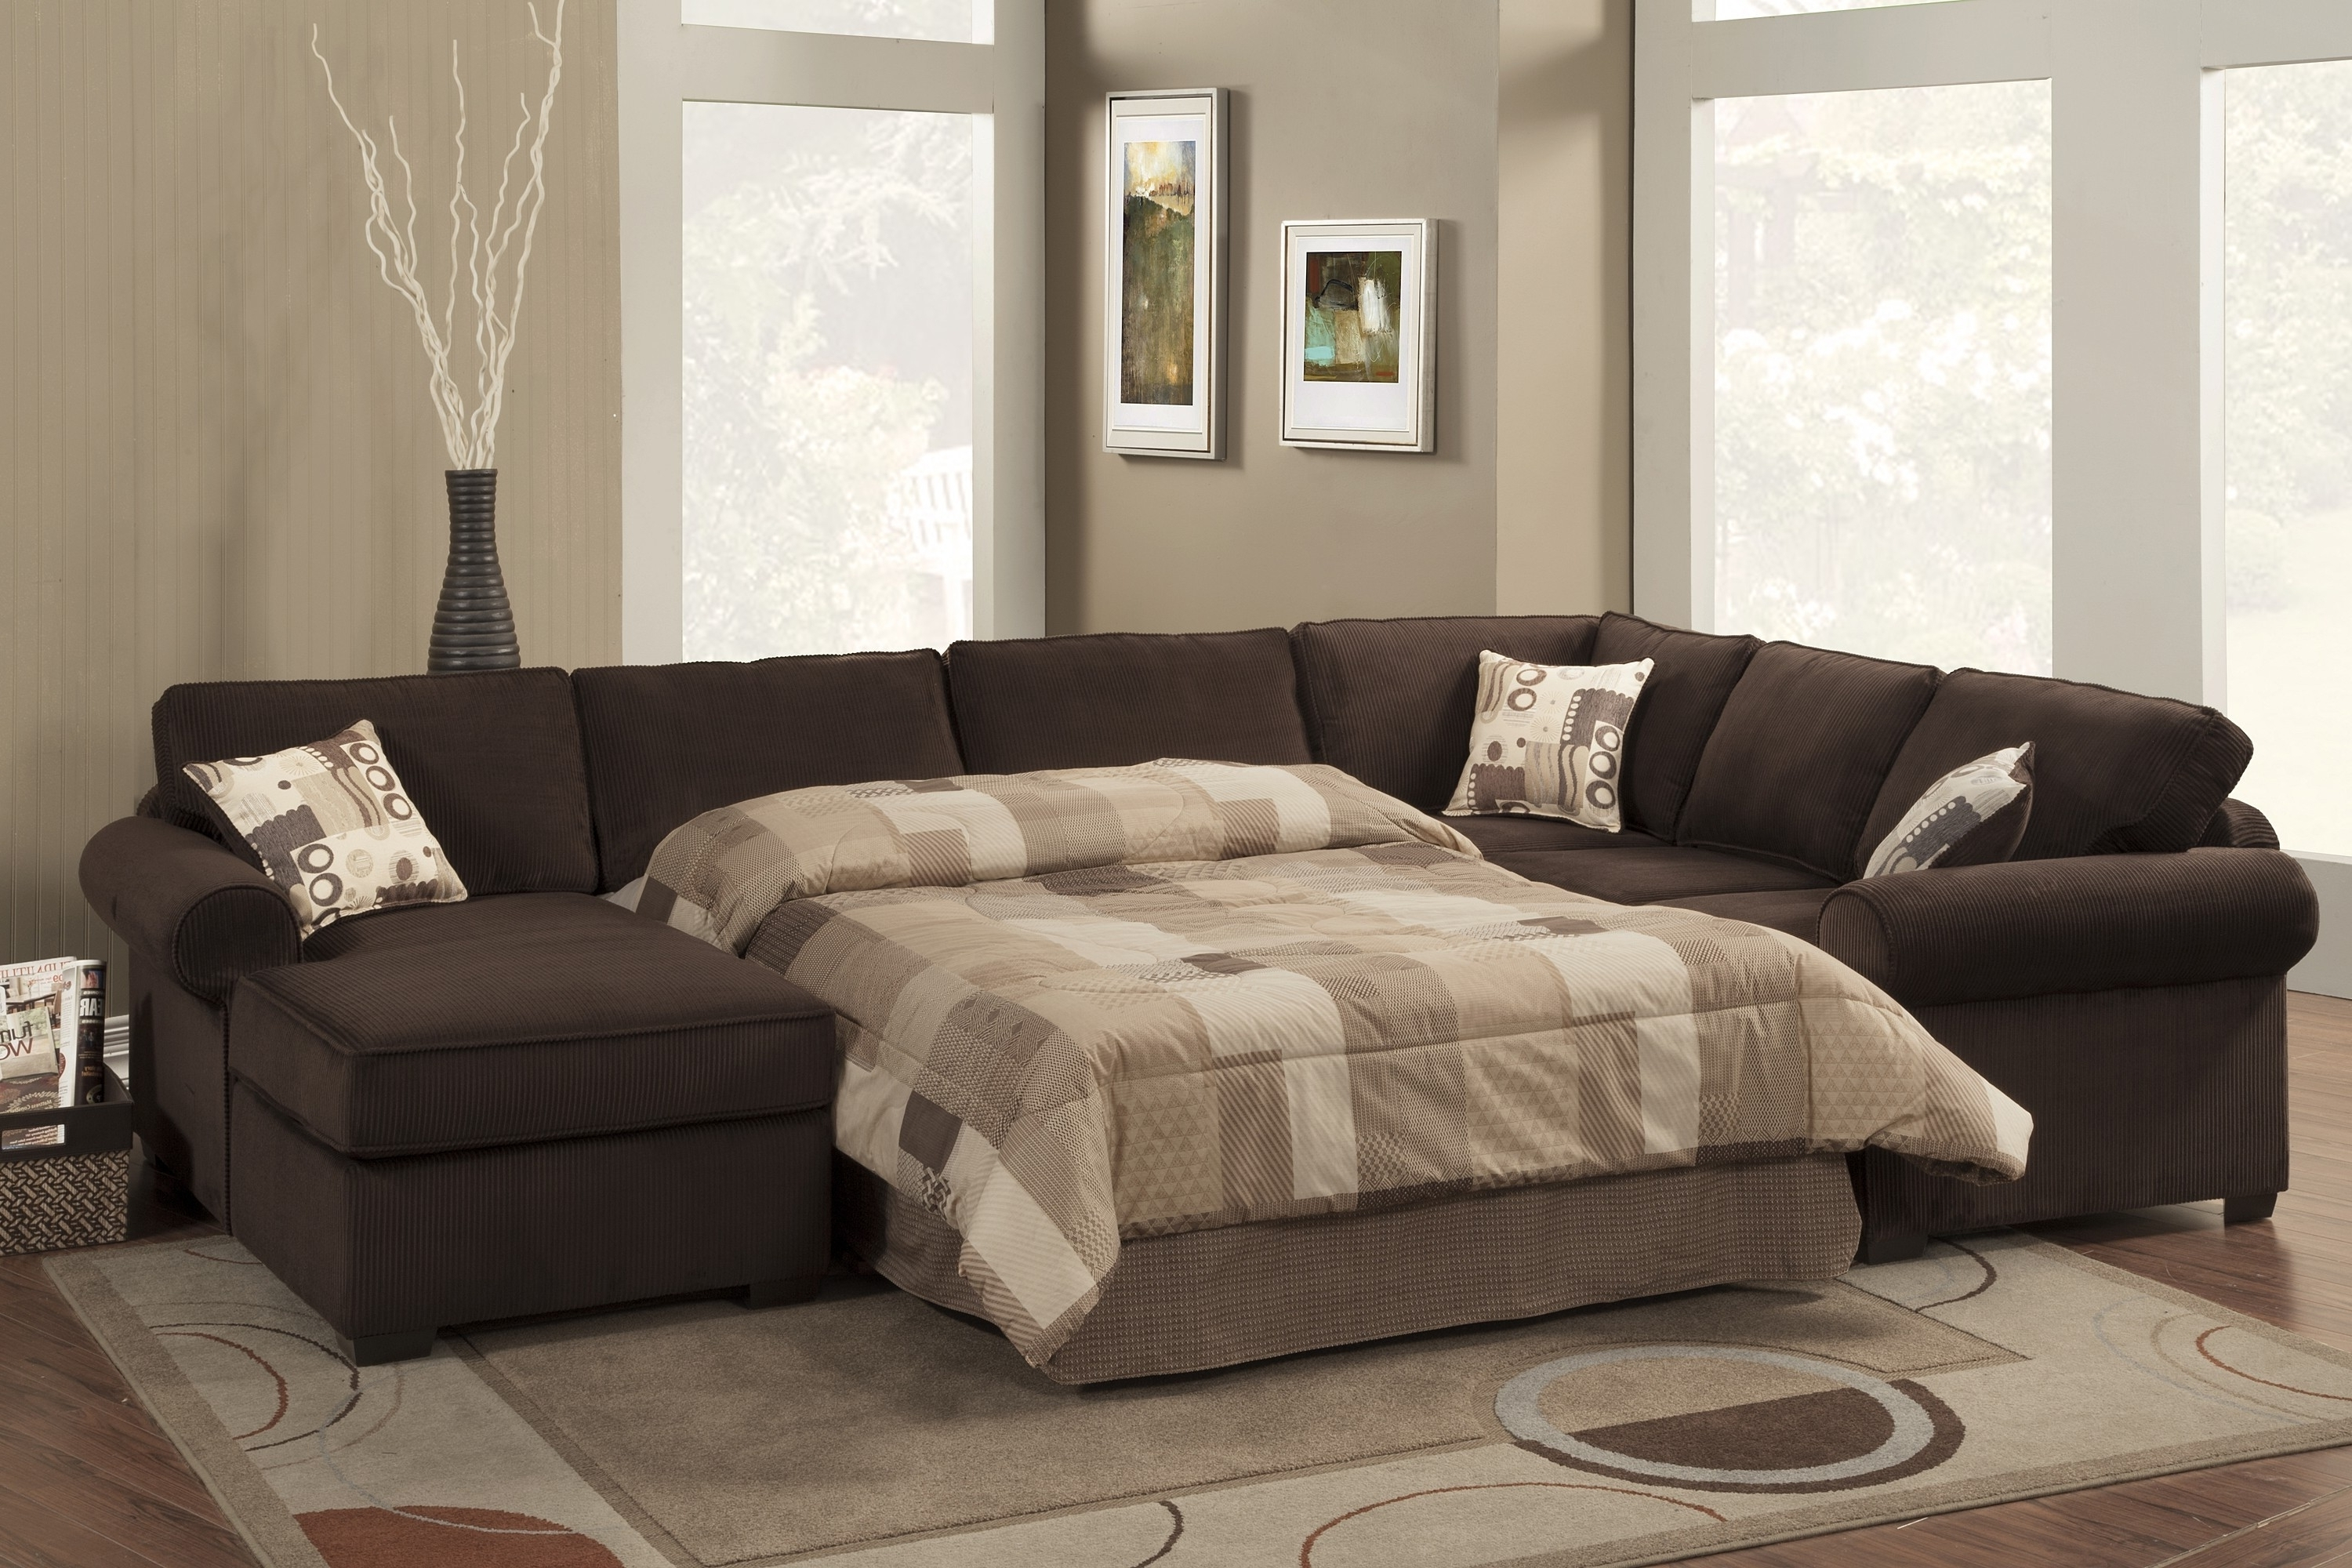 3 Piece Sectional Sofa With Sleeper (View 17 of 20)